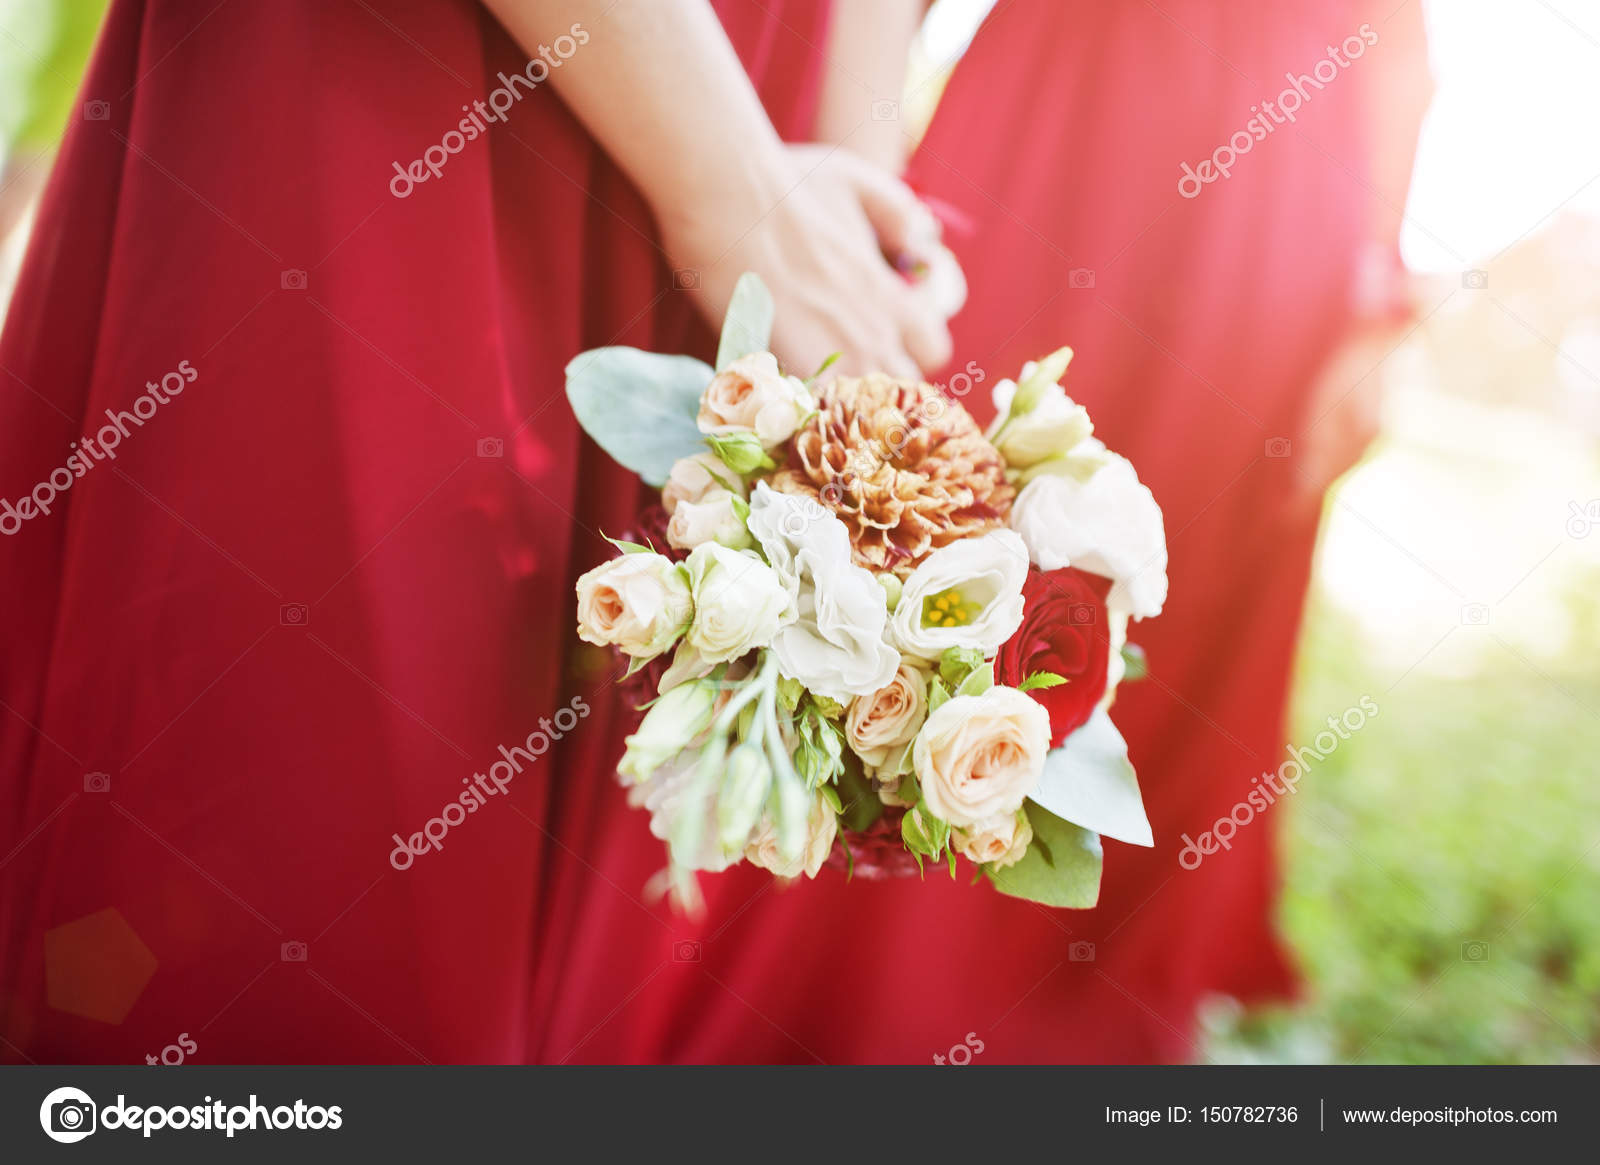 Hands Of Two Bridesmaids Wear On Red Dress With Wedding Bouquets Stock Photo C Asphoto777 150782736